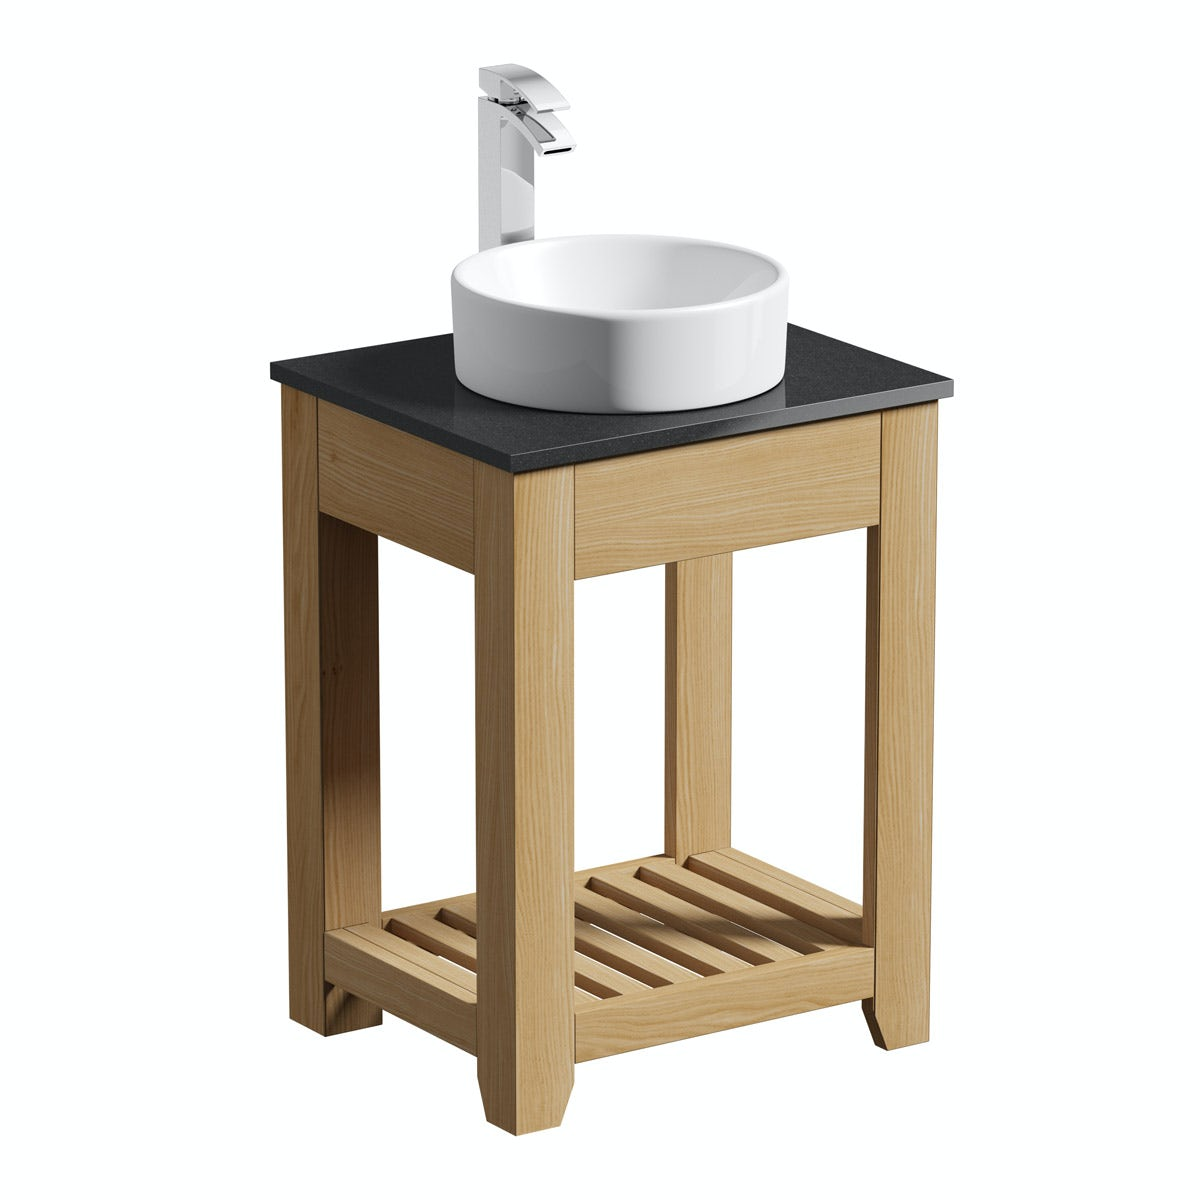 The Bath Co. Hoxton oak washstand with black marble top and Calhoun basin 600mm